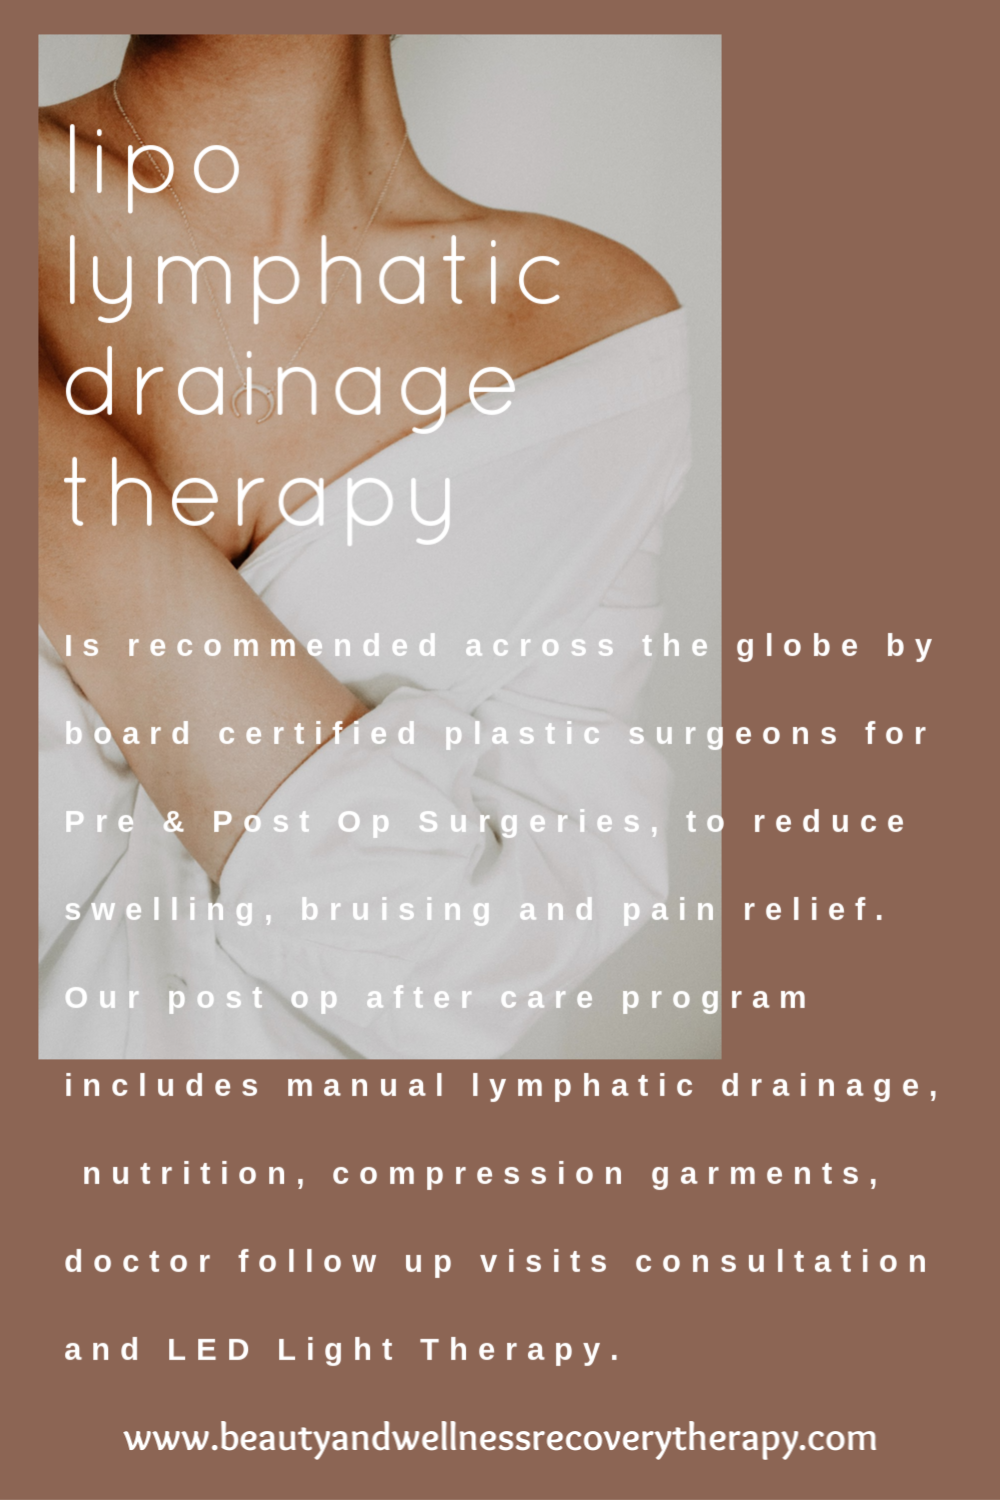 Liposuction Lymphatic Drainage Therapy Houston